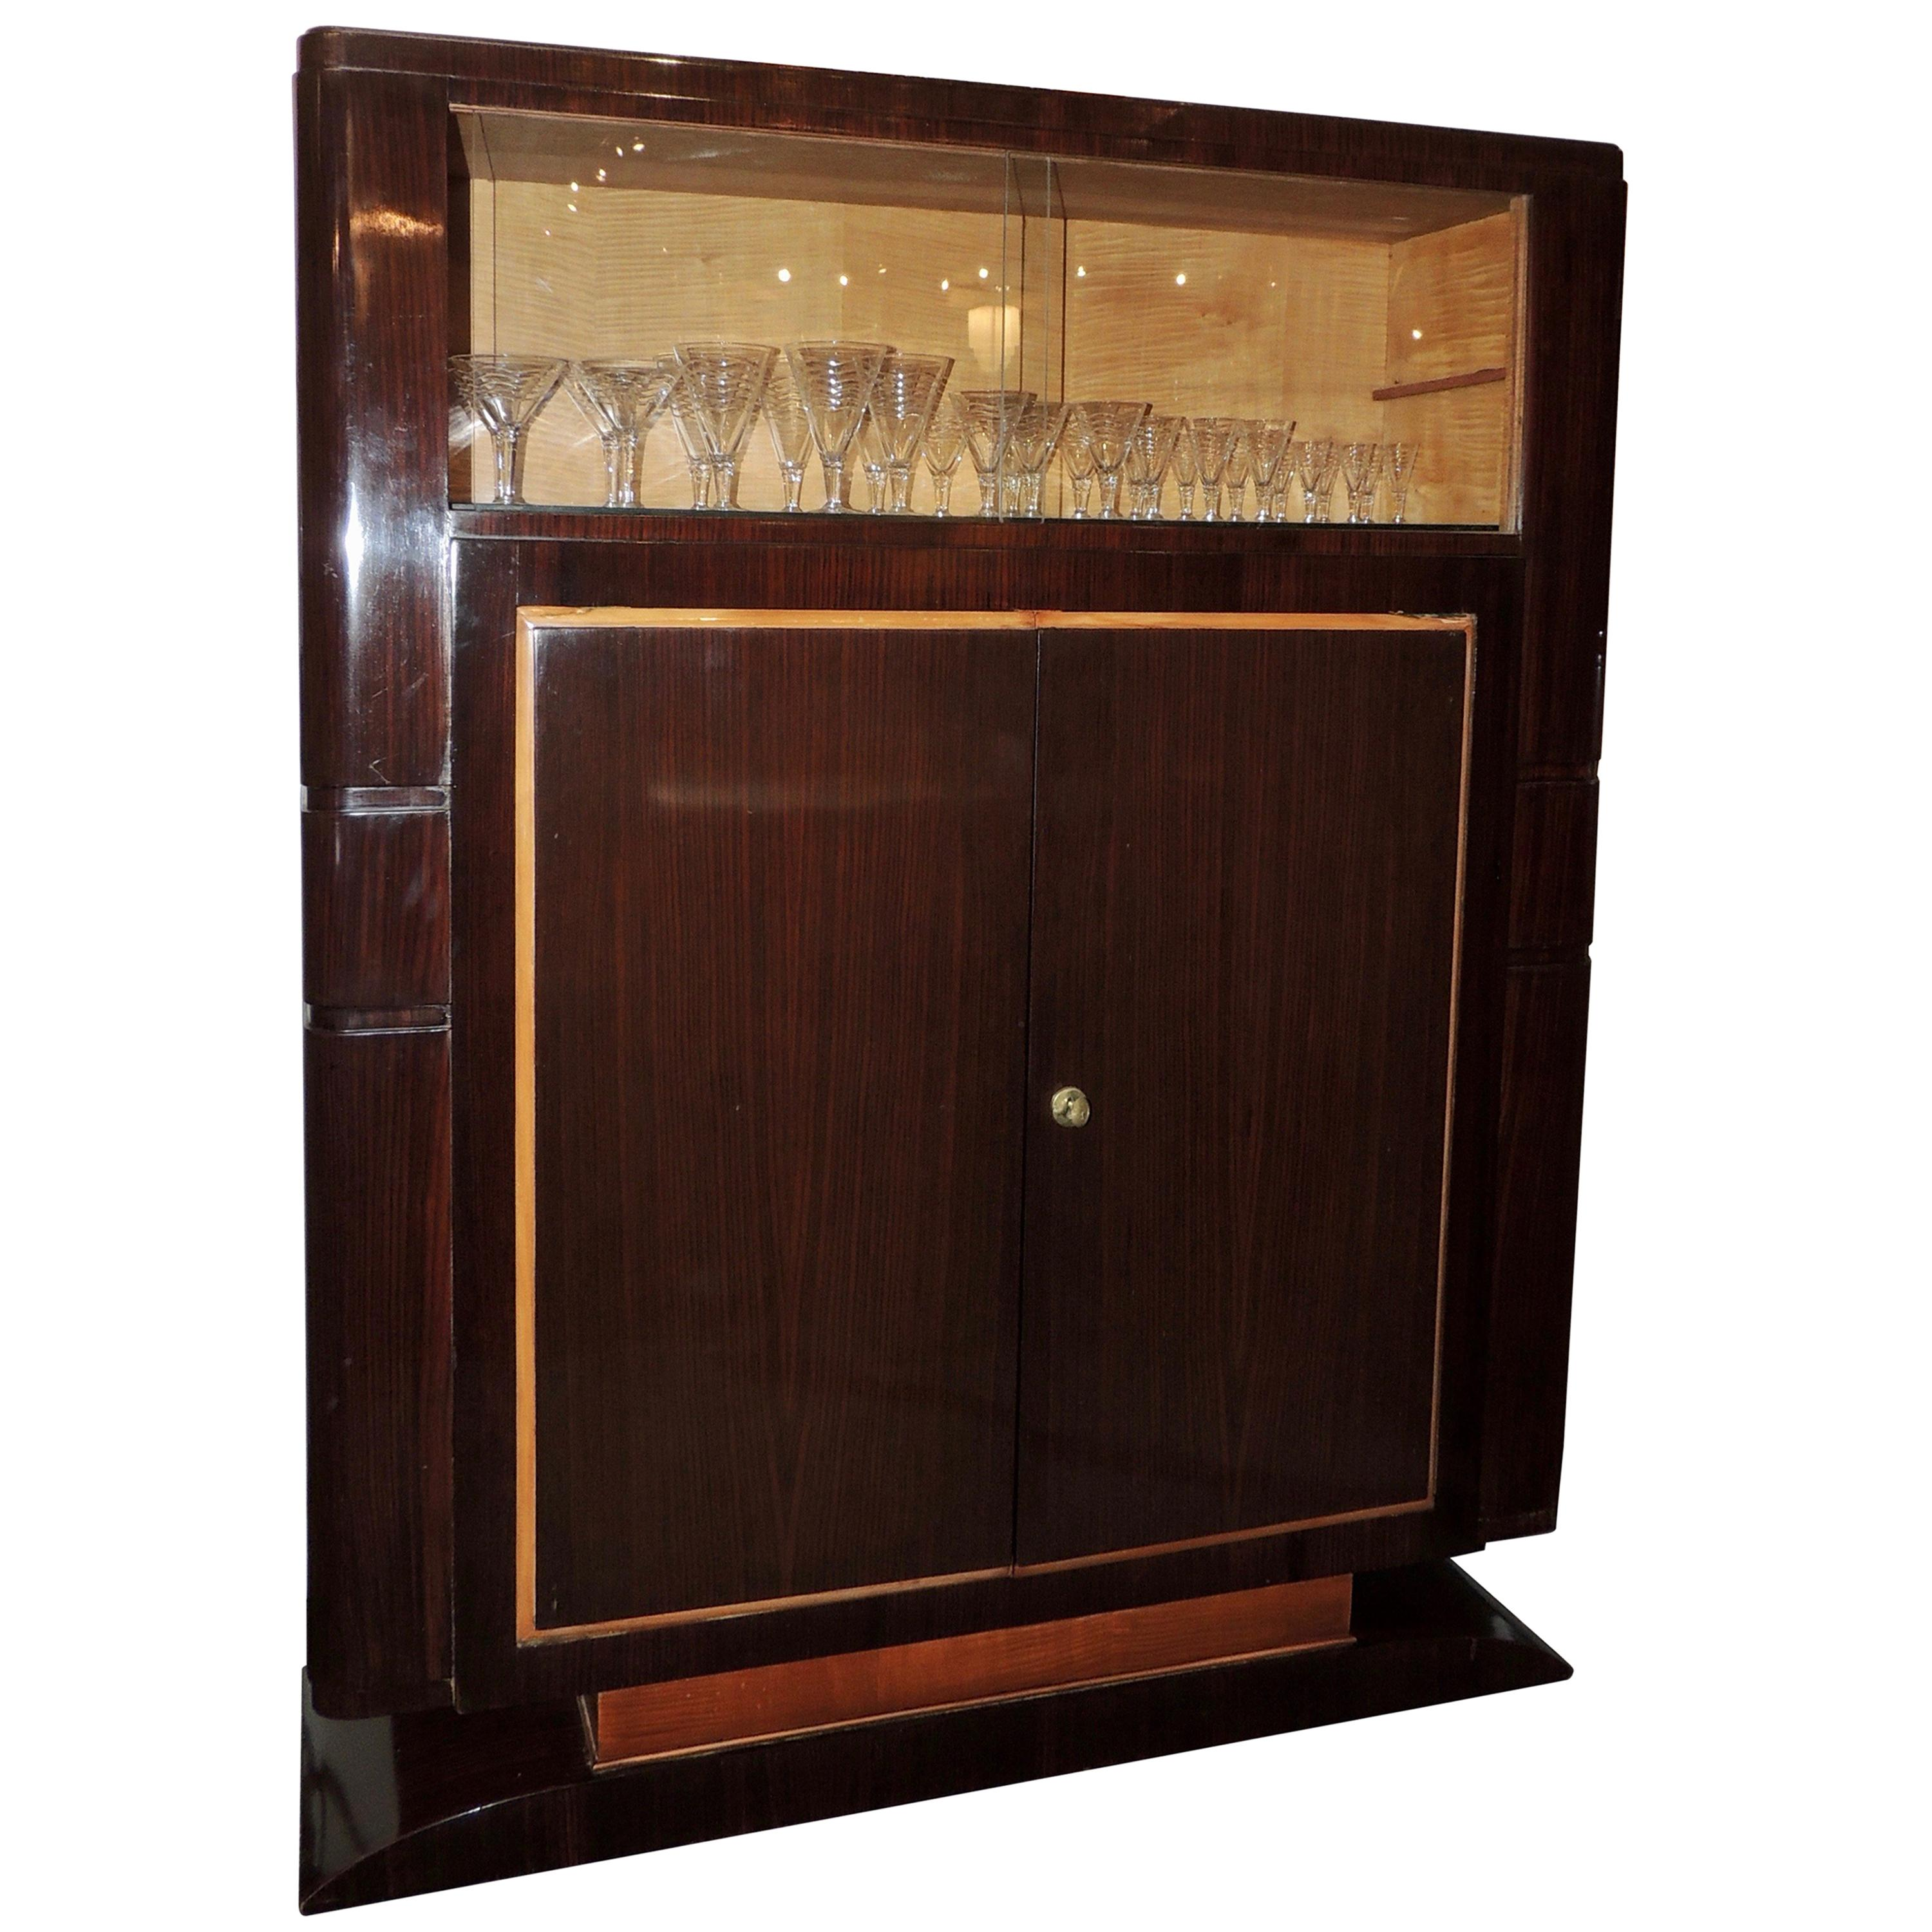 French Art Deco Display Cabinet in Macassar by Jules Leleu